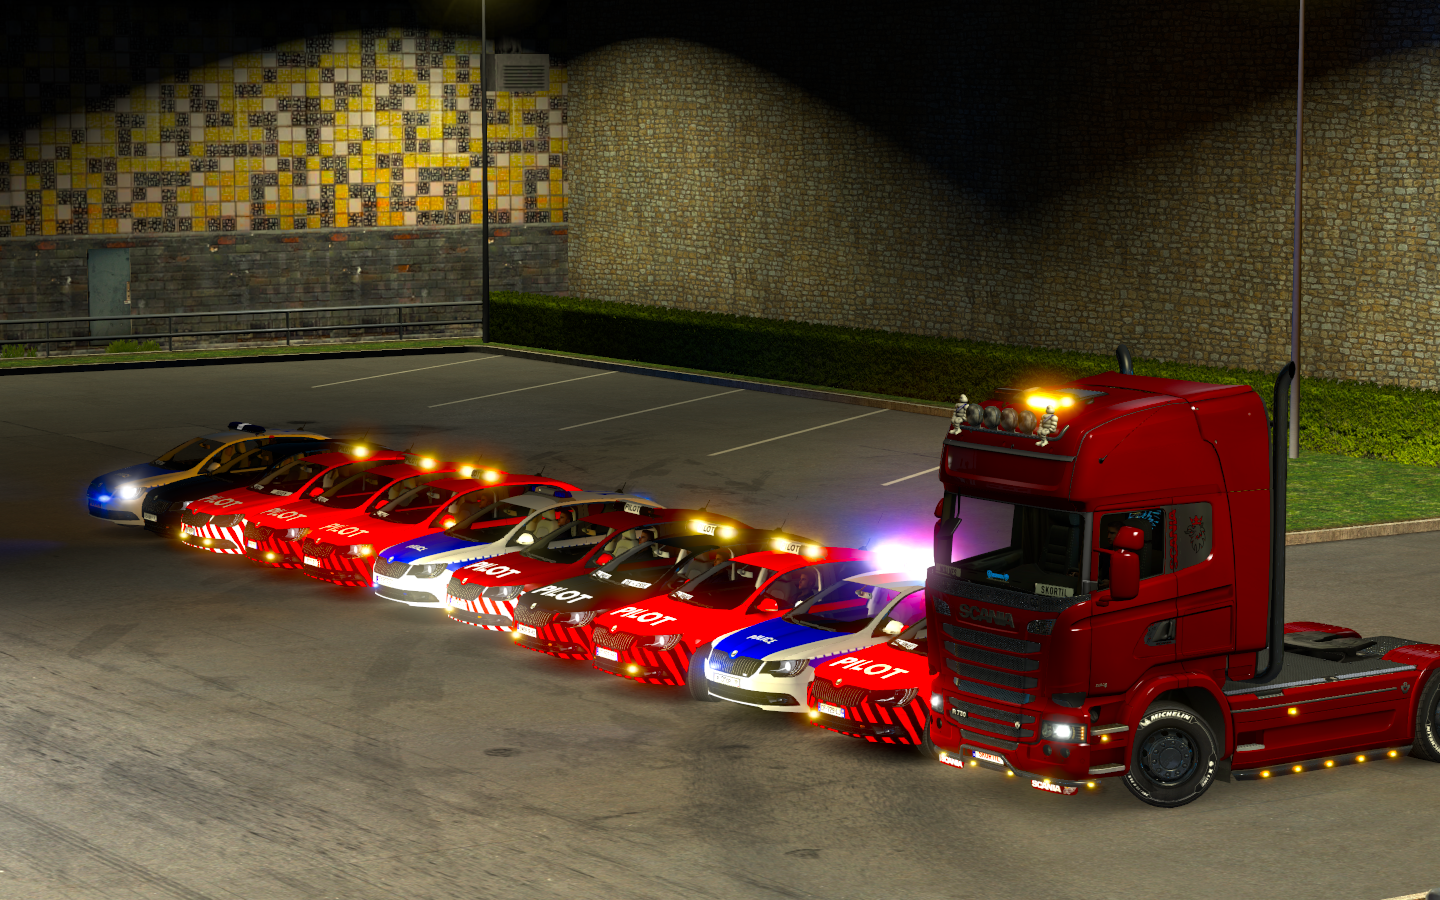 ets2_20190315_224416_00.png